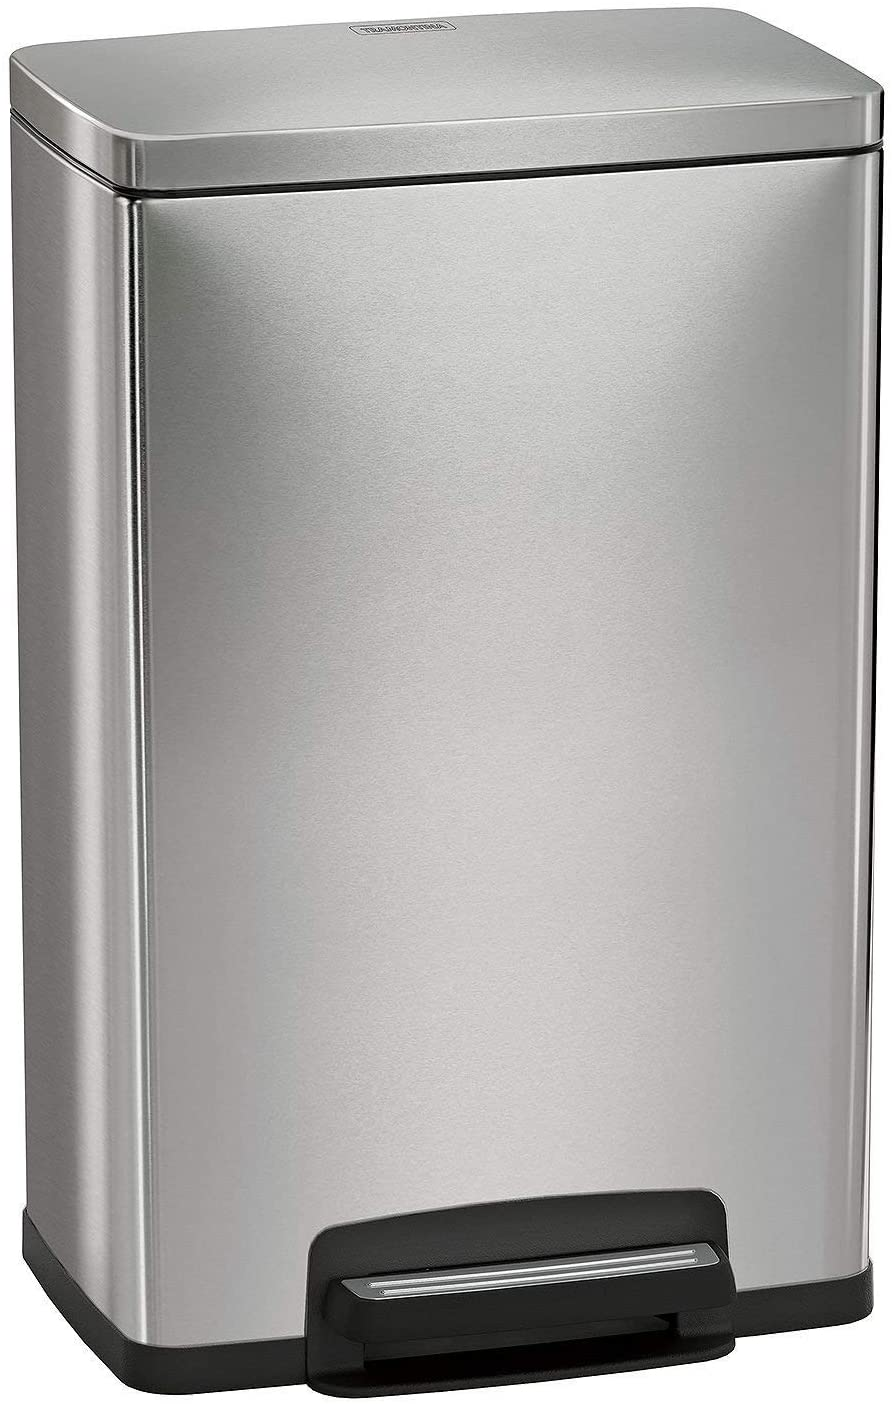 Tramontina 13 Gallon Step Trash Can 2 Includes Steel Attention brand Translated Stainless F